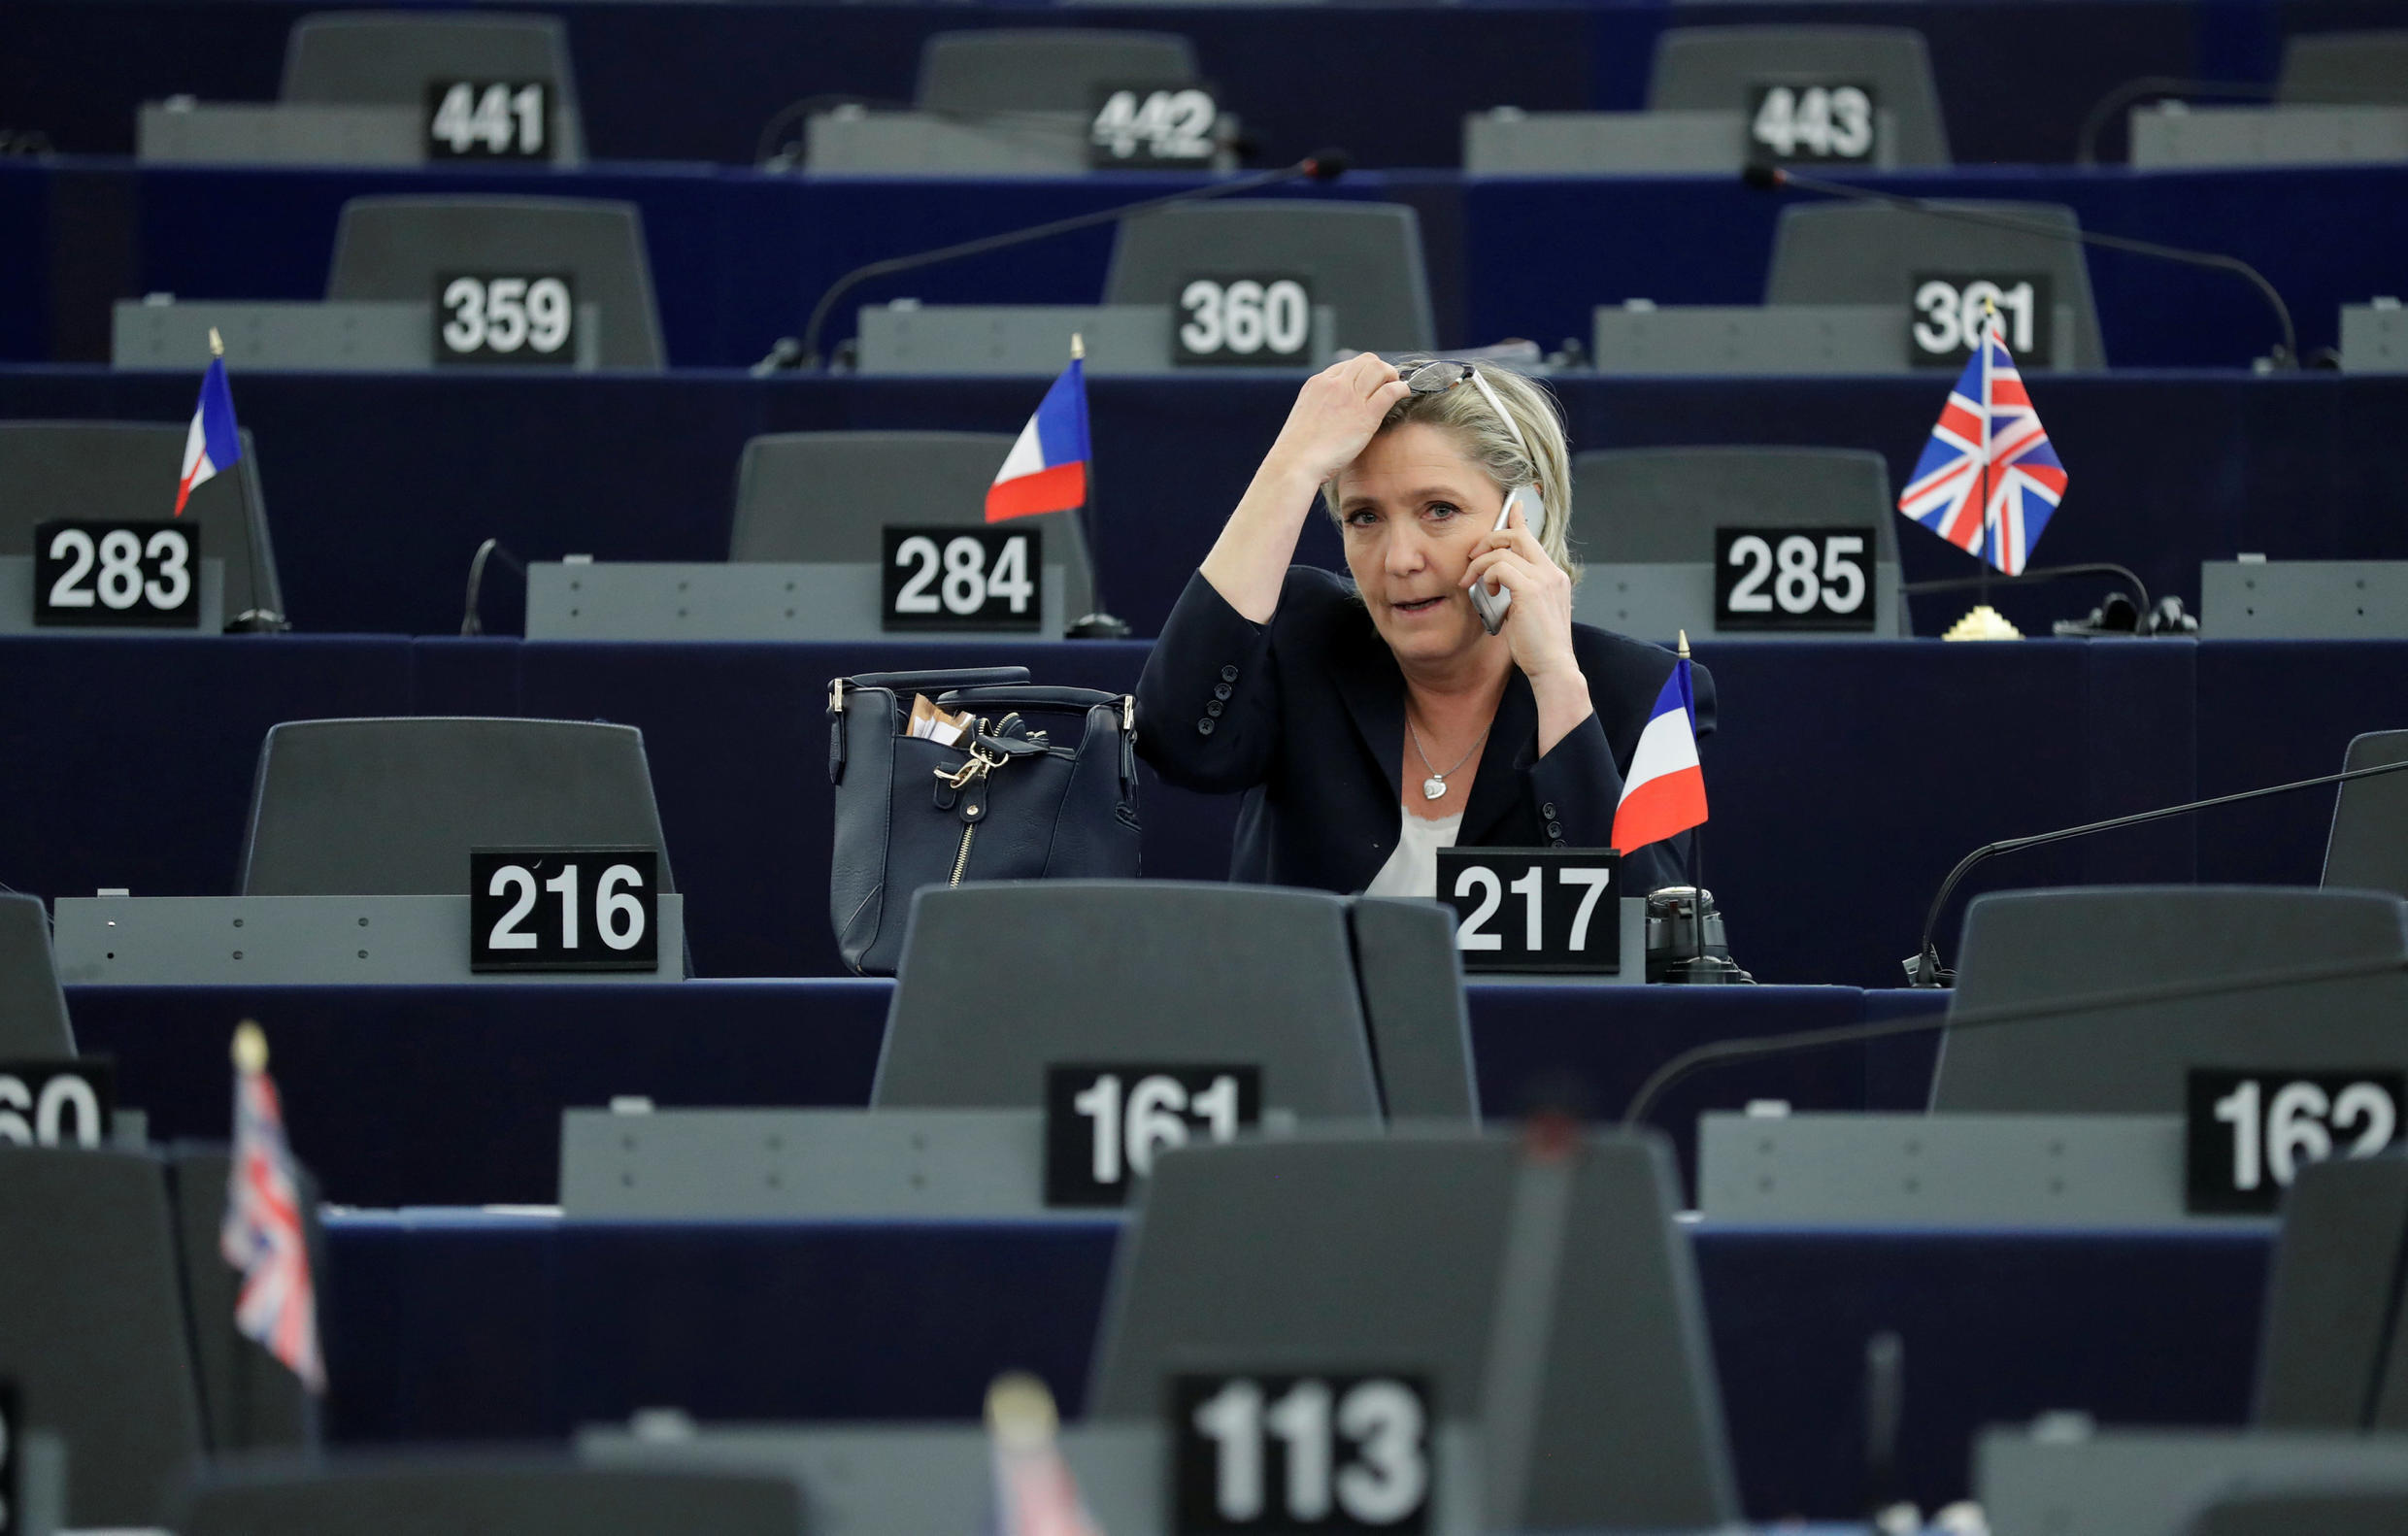 Marine Le Pen, French National Front (FN) political party leader and Member of the European Parliament, attends the election of the new President of the European Parliament in Strasbourg, France, January 17, 2017.